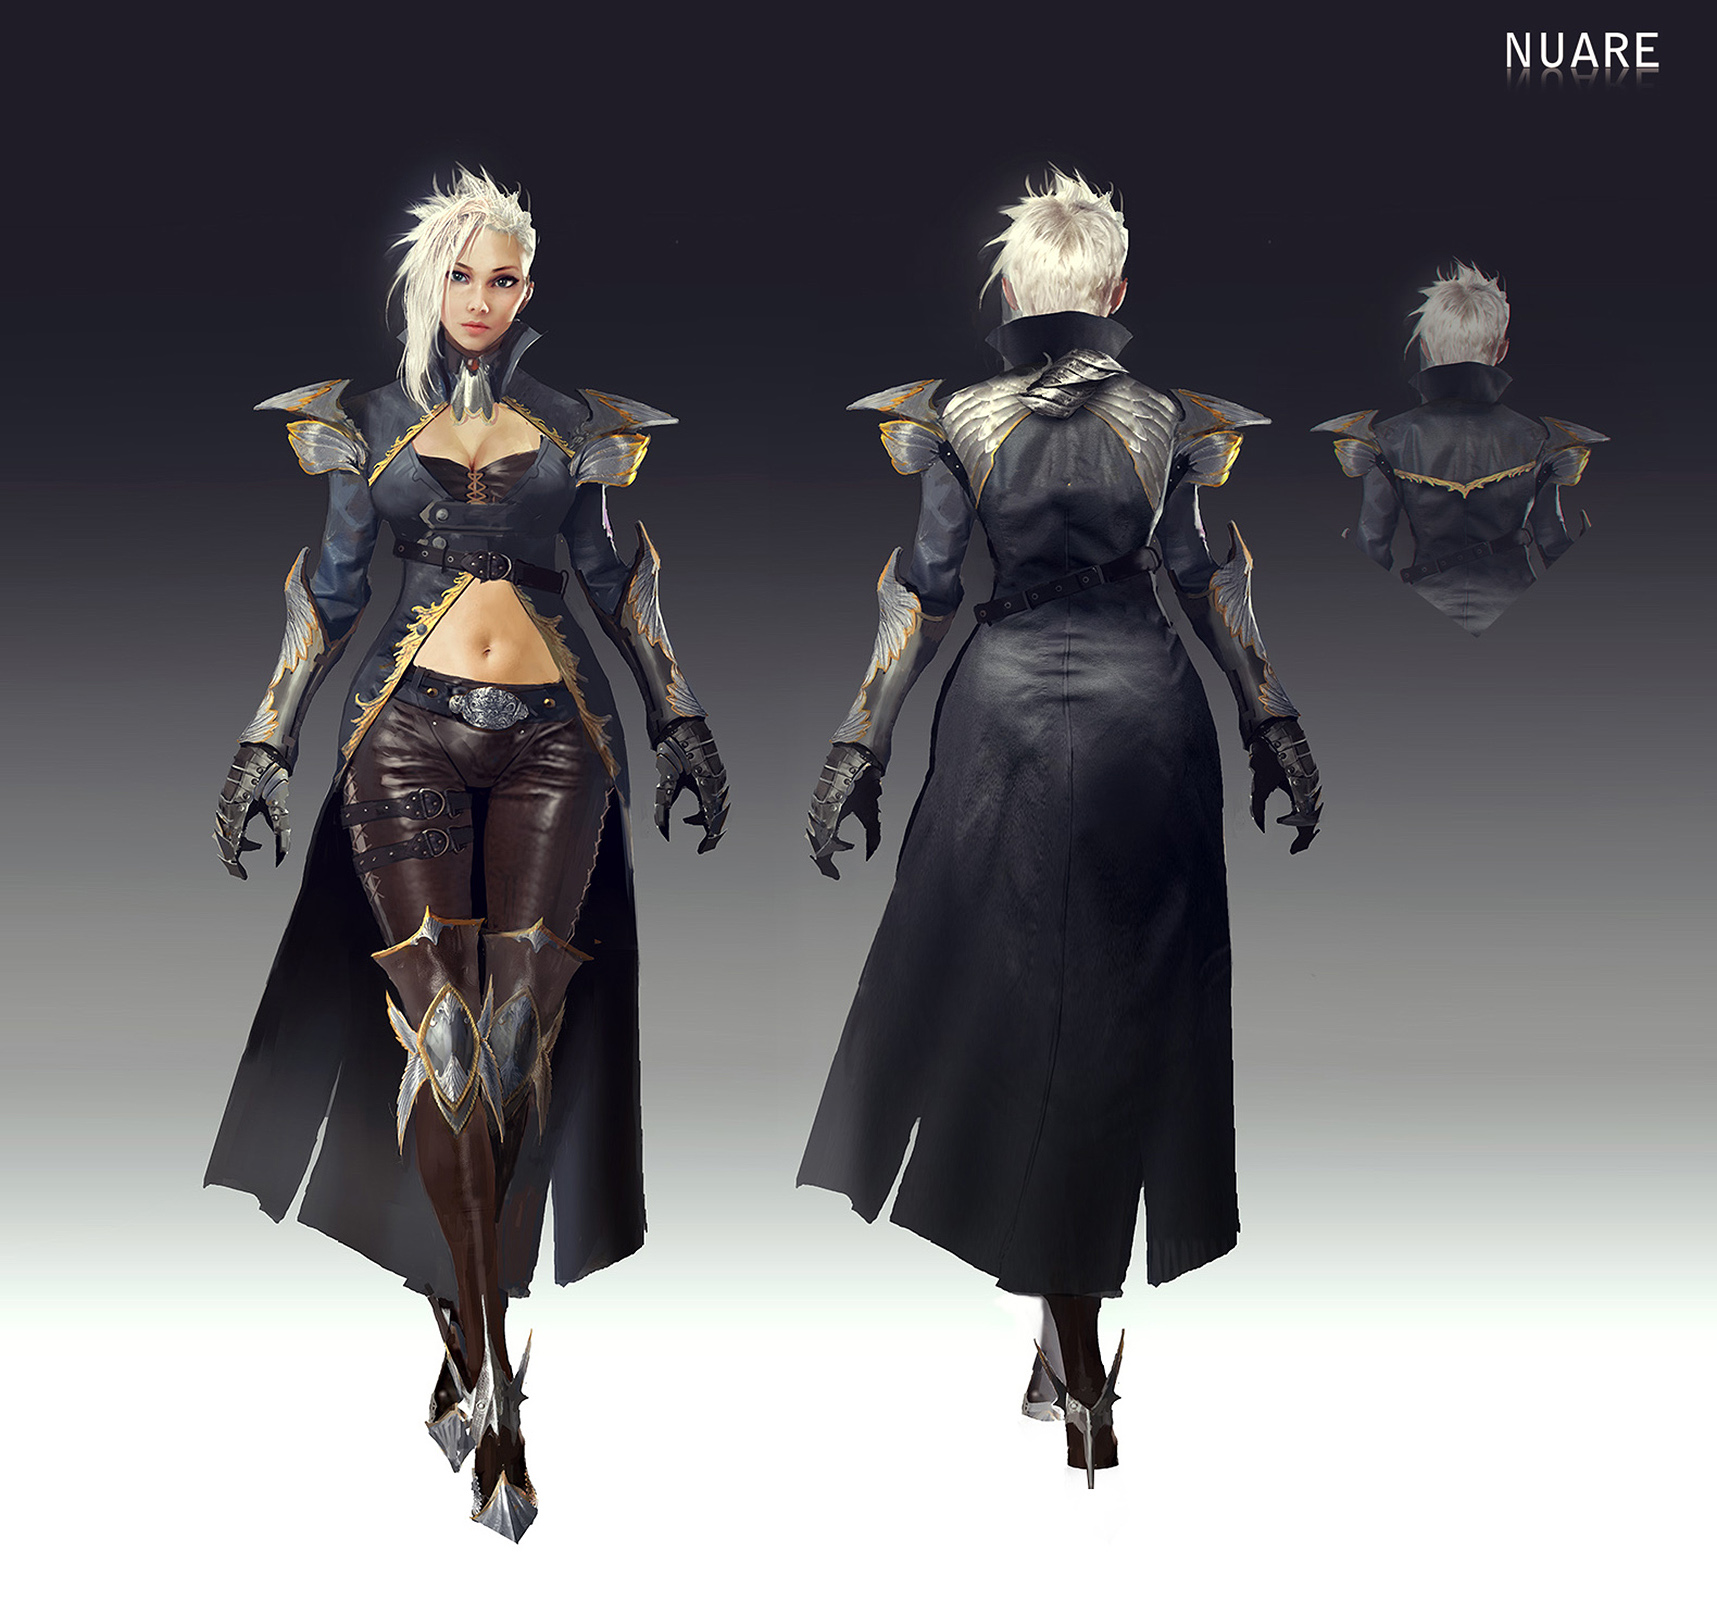 Character Design For Games Book : Characters album nuare studio